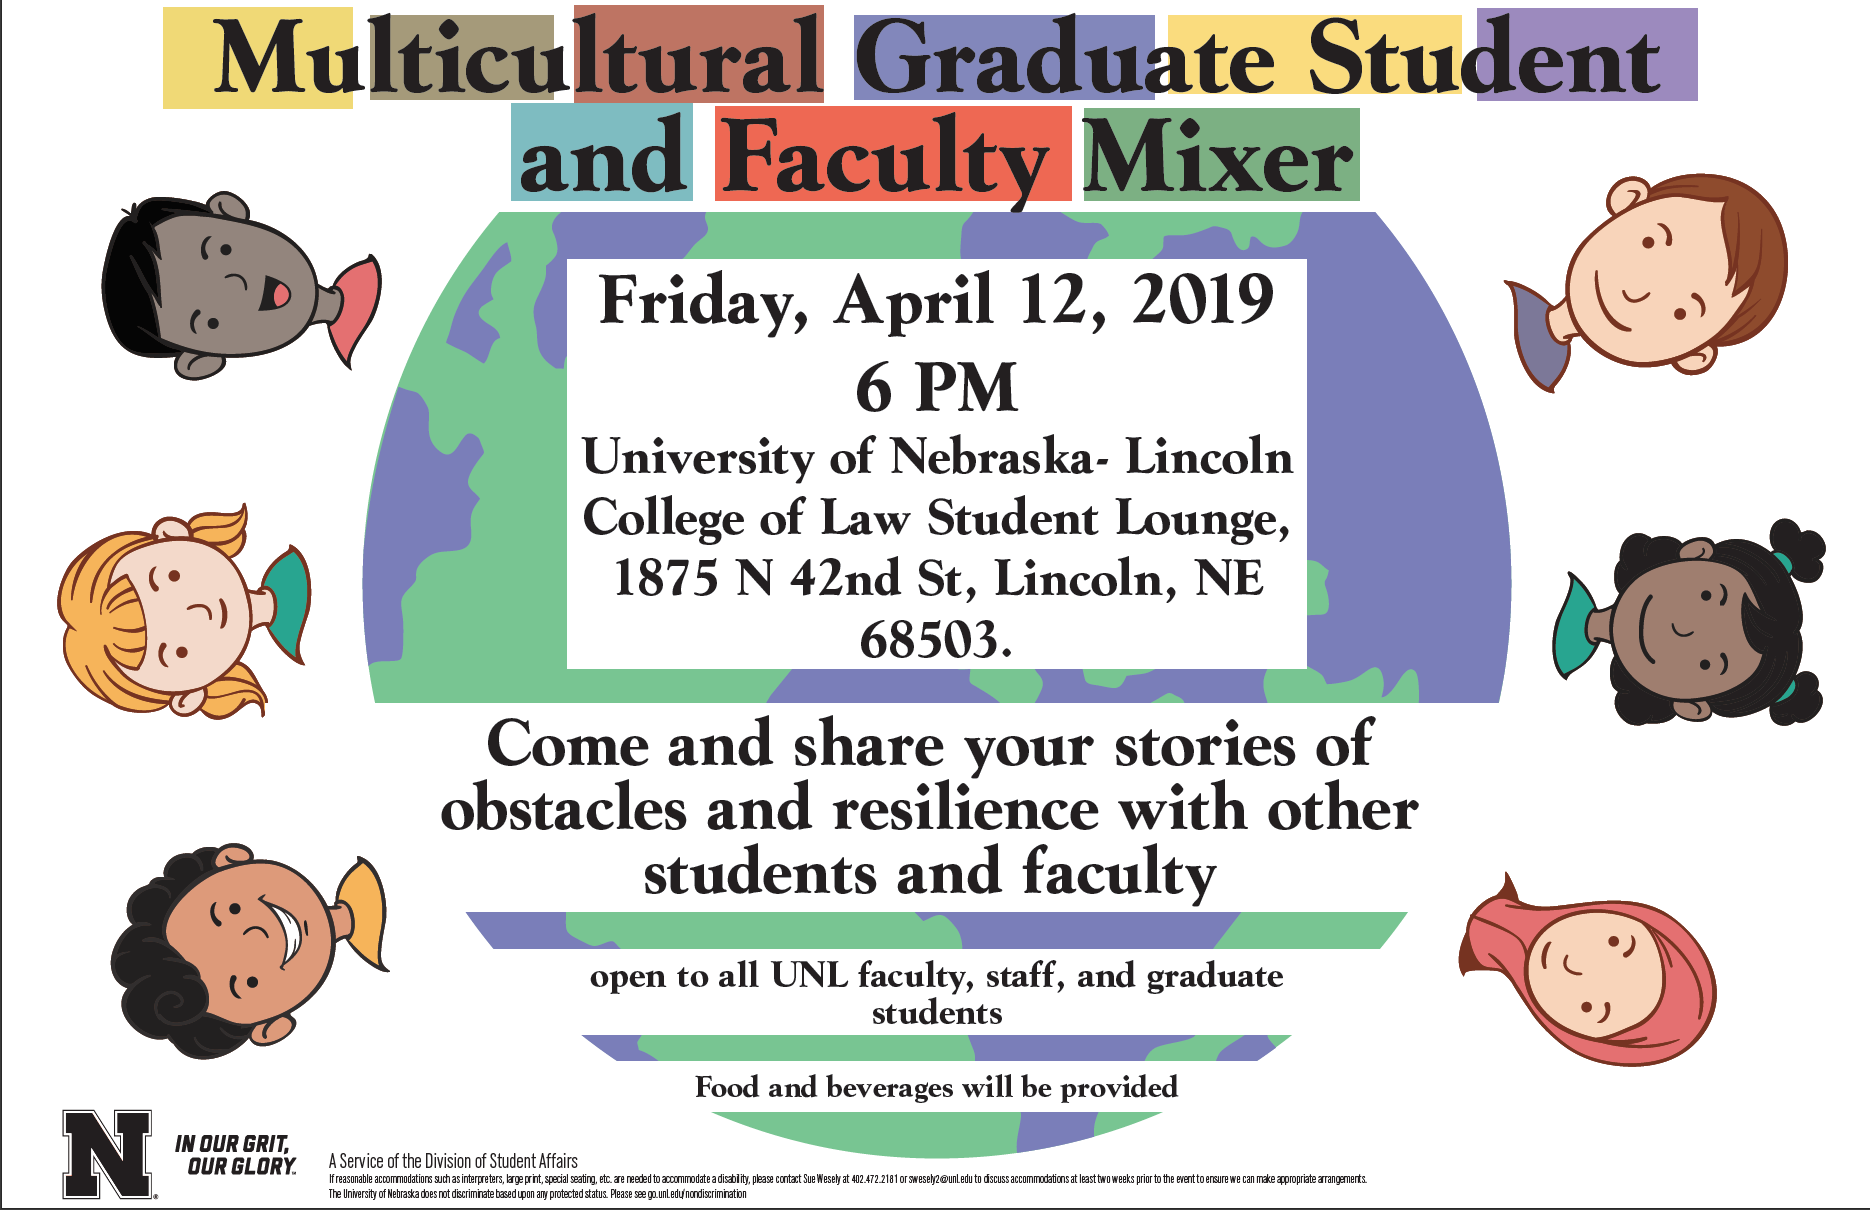 Multicultural Graduate Student and Faculty Mixer, April 12